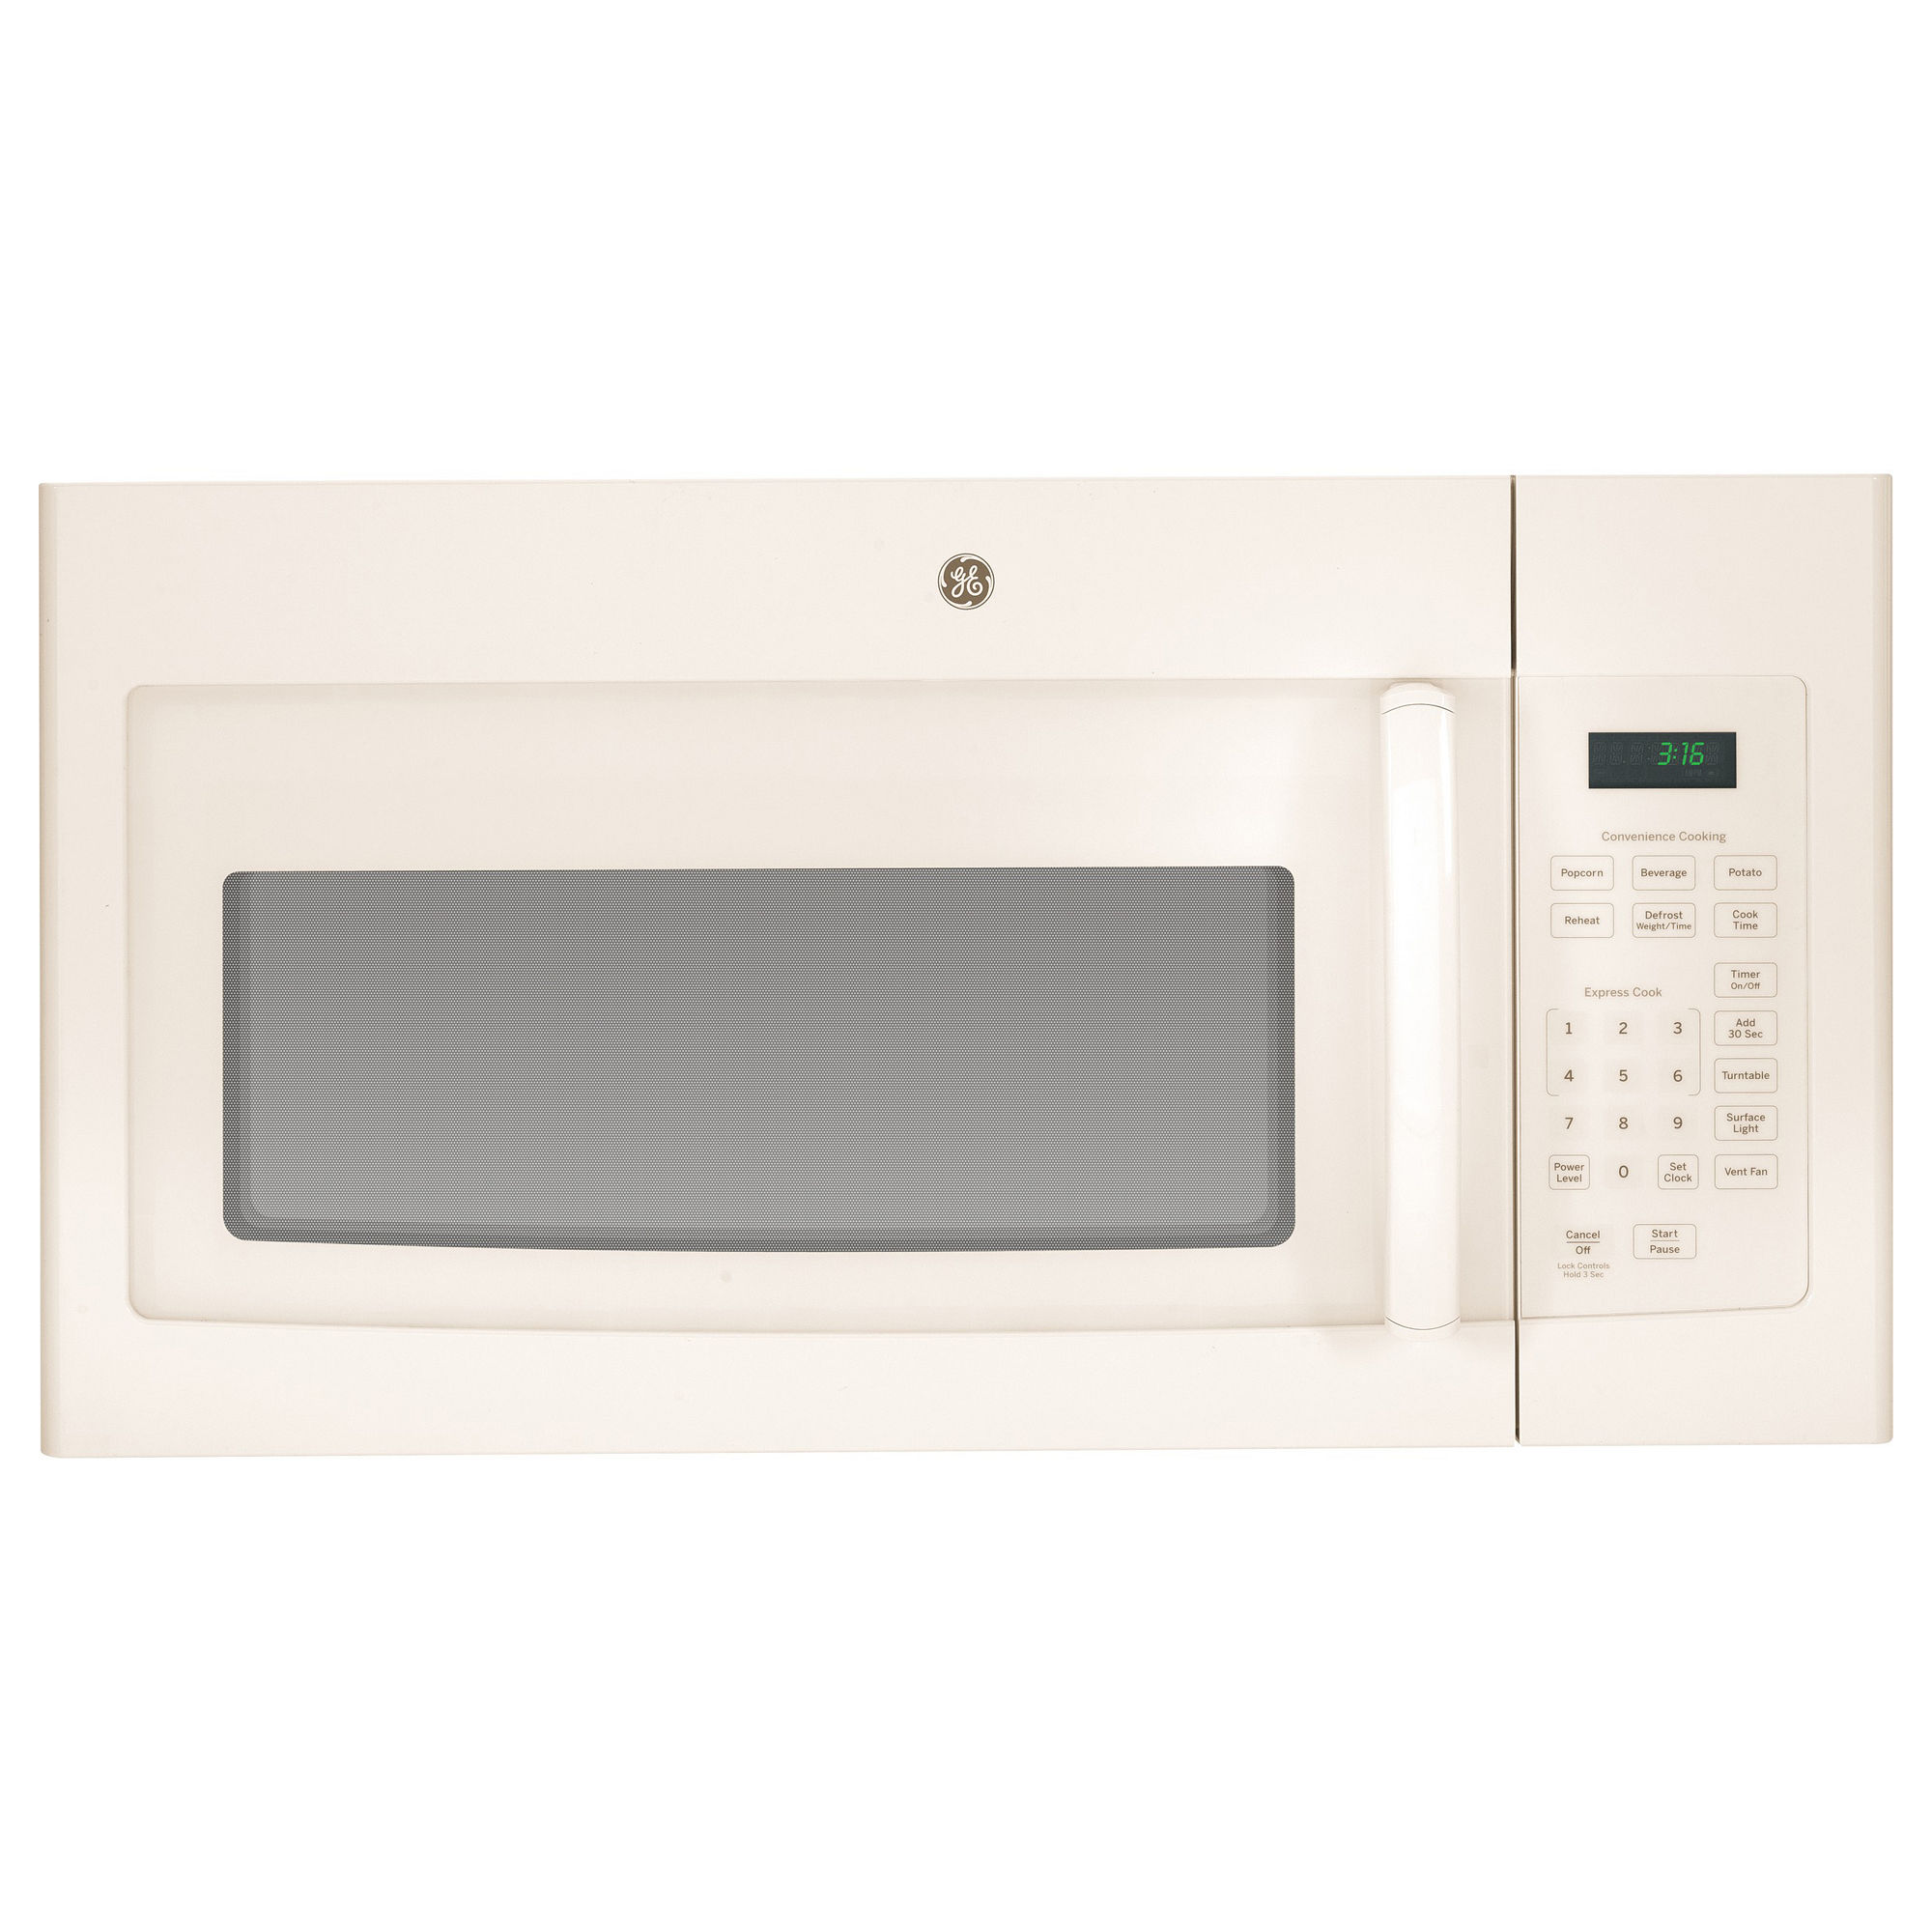 GE� 1.6 CU.FT. OVER-THE-RANGE MICROWAVE OVEN, BISQUE, 1000 W